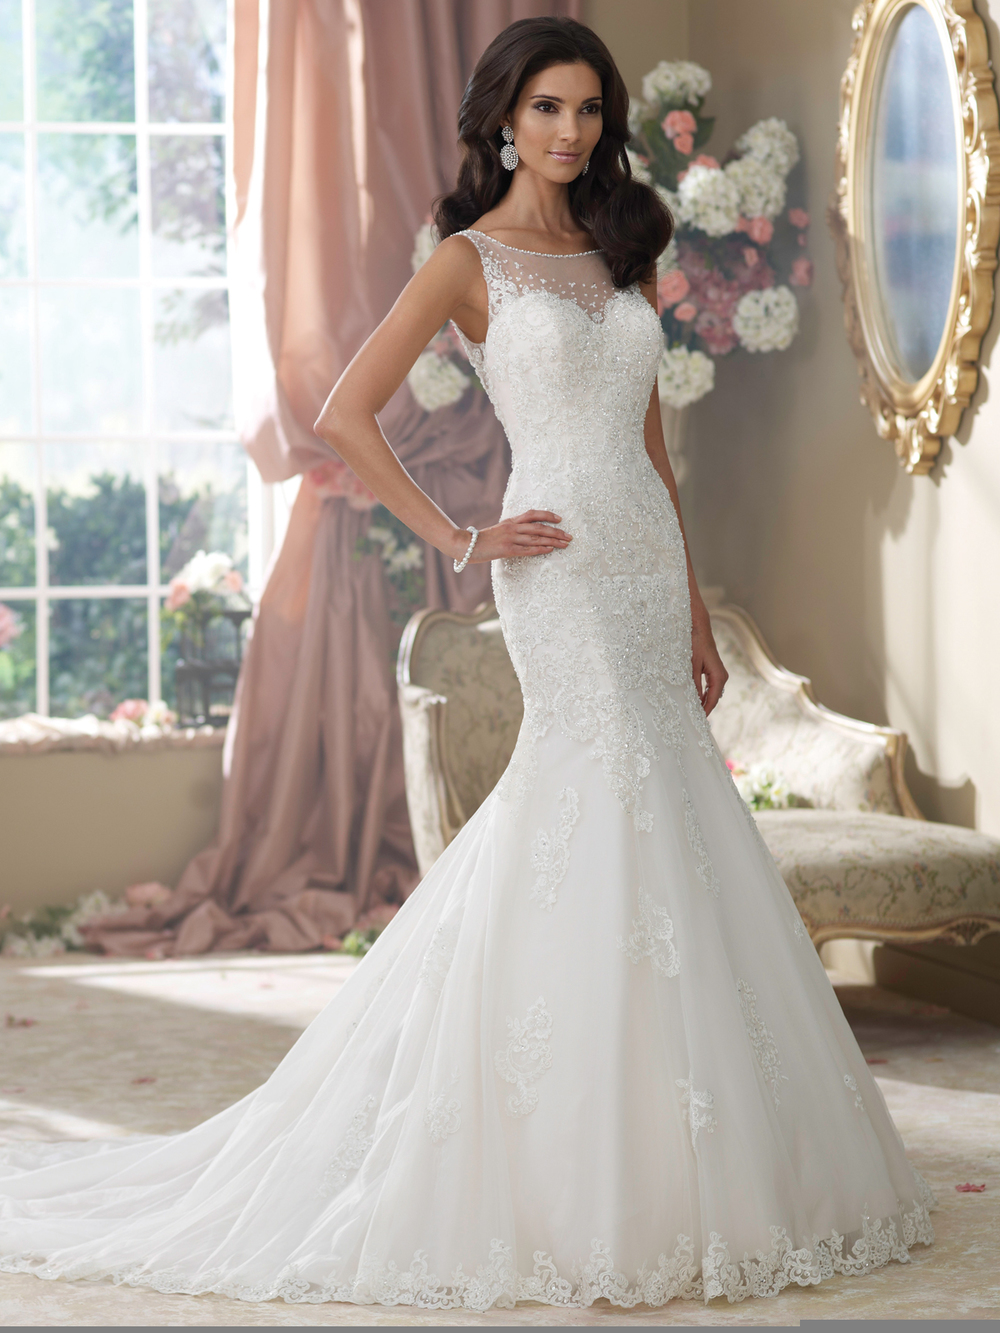 The Bridal Showroom  carries beautiful designer bridal gowns like these by David Tutera.